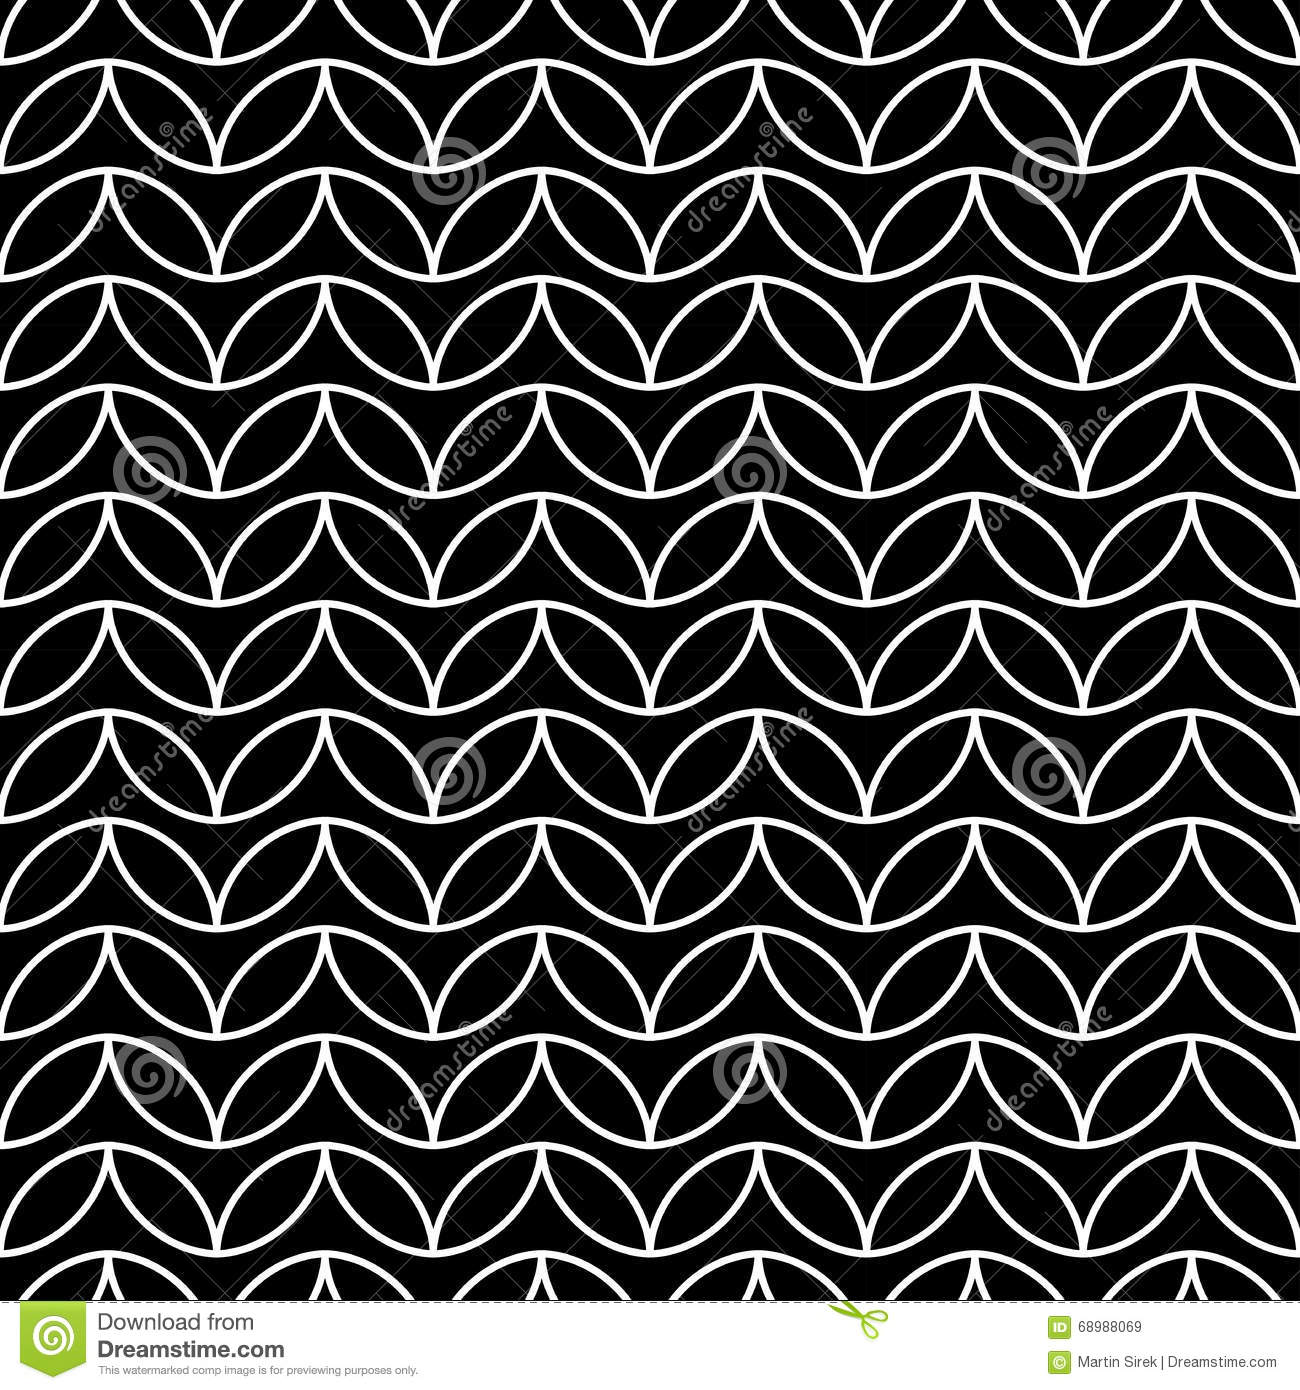 Vector modern seamless geometry pattern chevron, black and white abstract